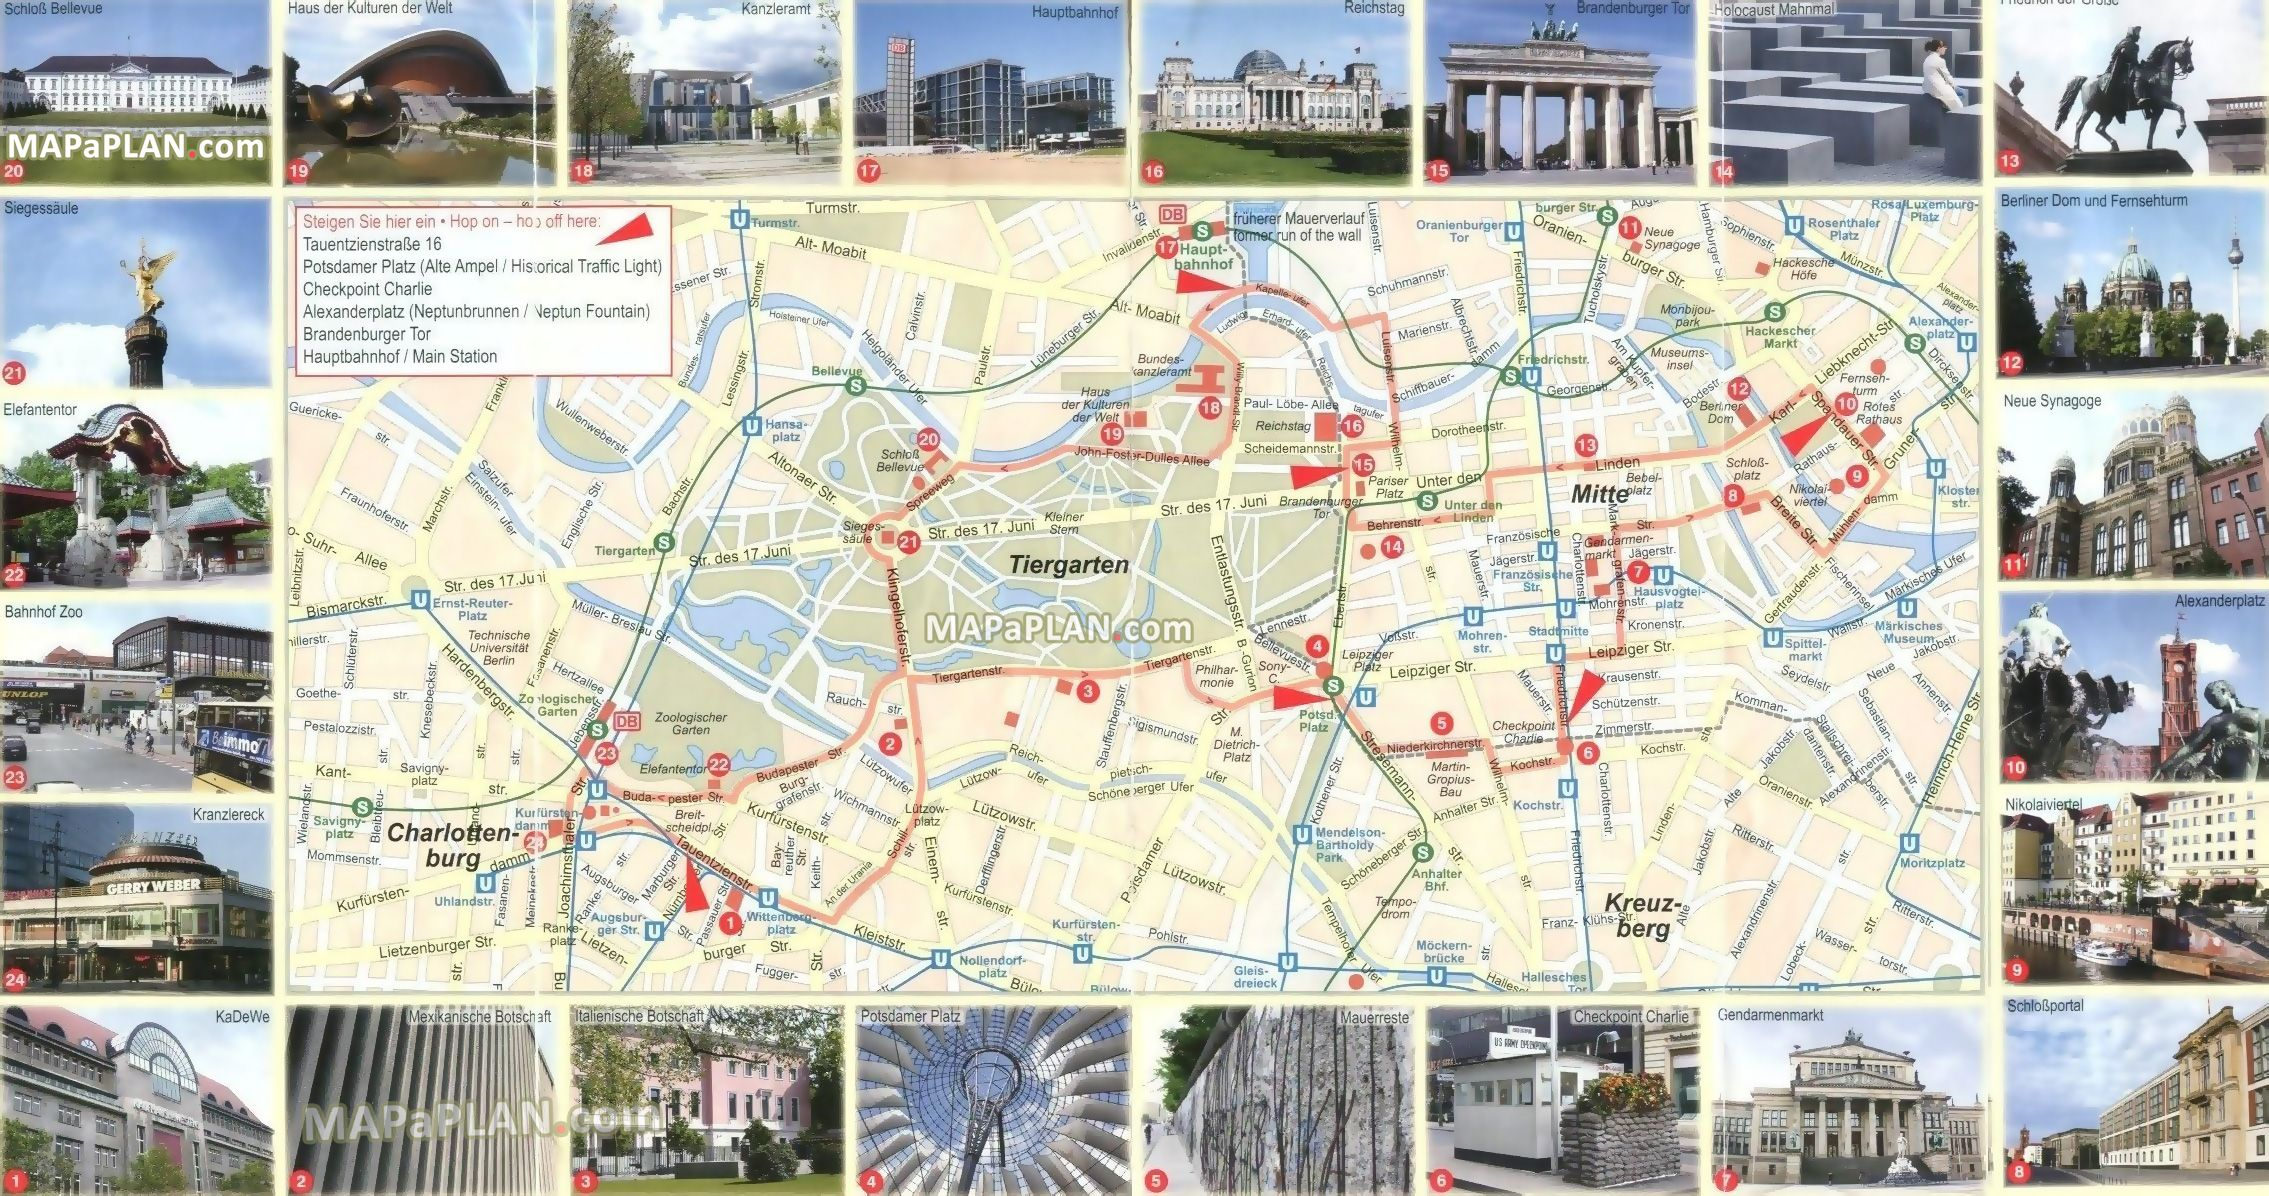 Berlin map - Free virtual map with 24 images of famous